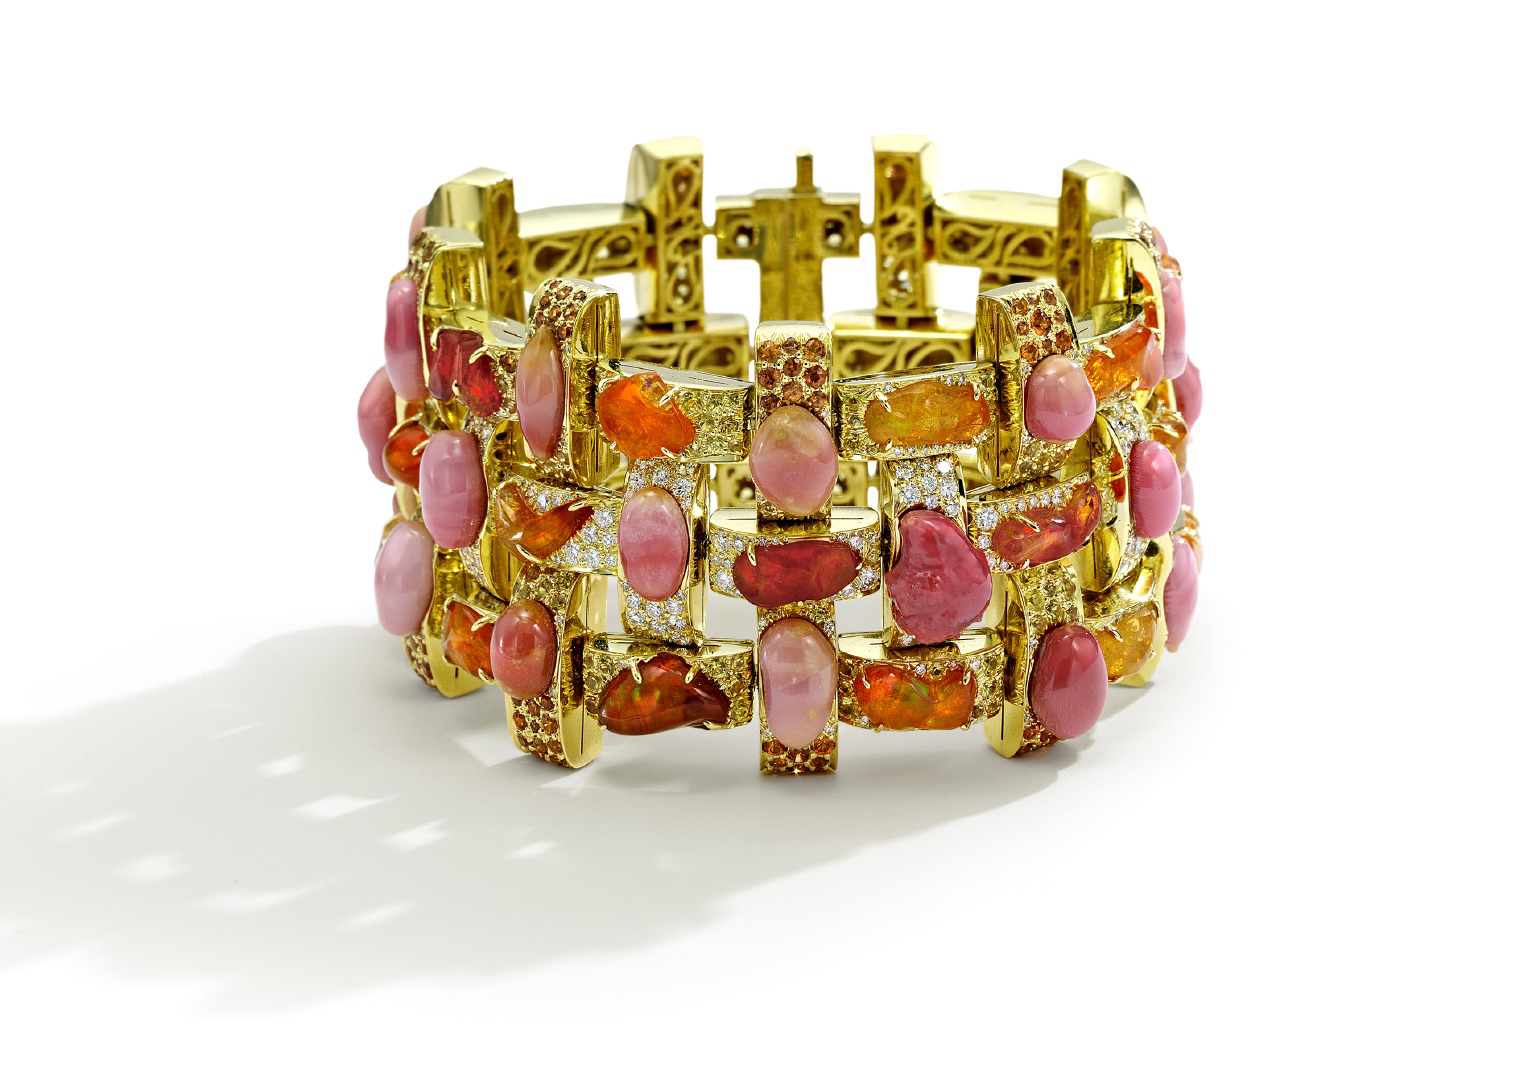 Boca Grande Bracelet Glowing in rich sunset hues, this Nicholas Varney18K gold bracelet features luminous pink conch pearls, blazing orange fire opals, diamonds and yellow sapphires. Note the gracefully designed 18K gold grille on the underside.